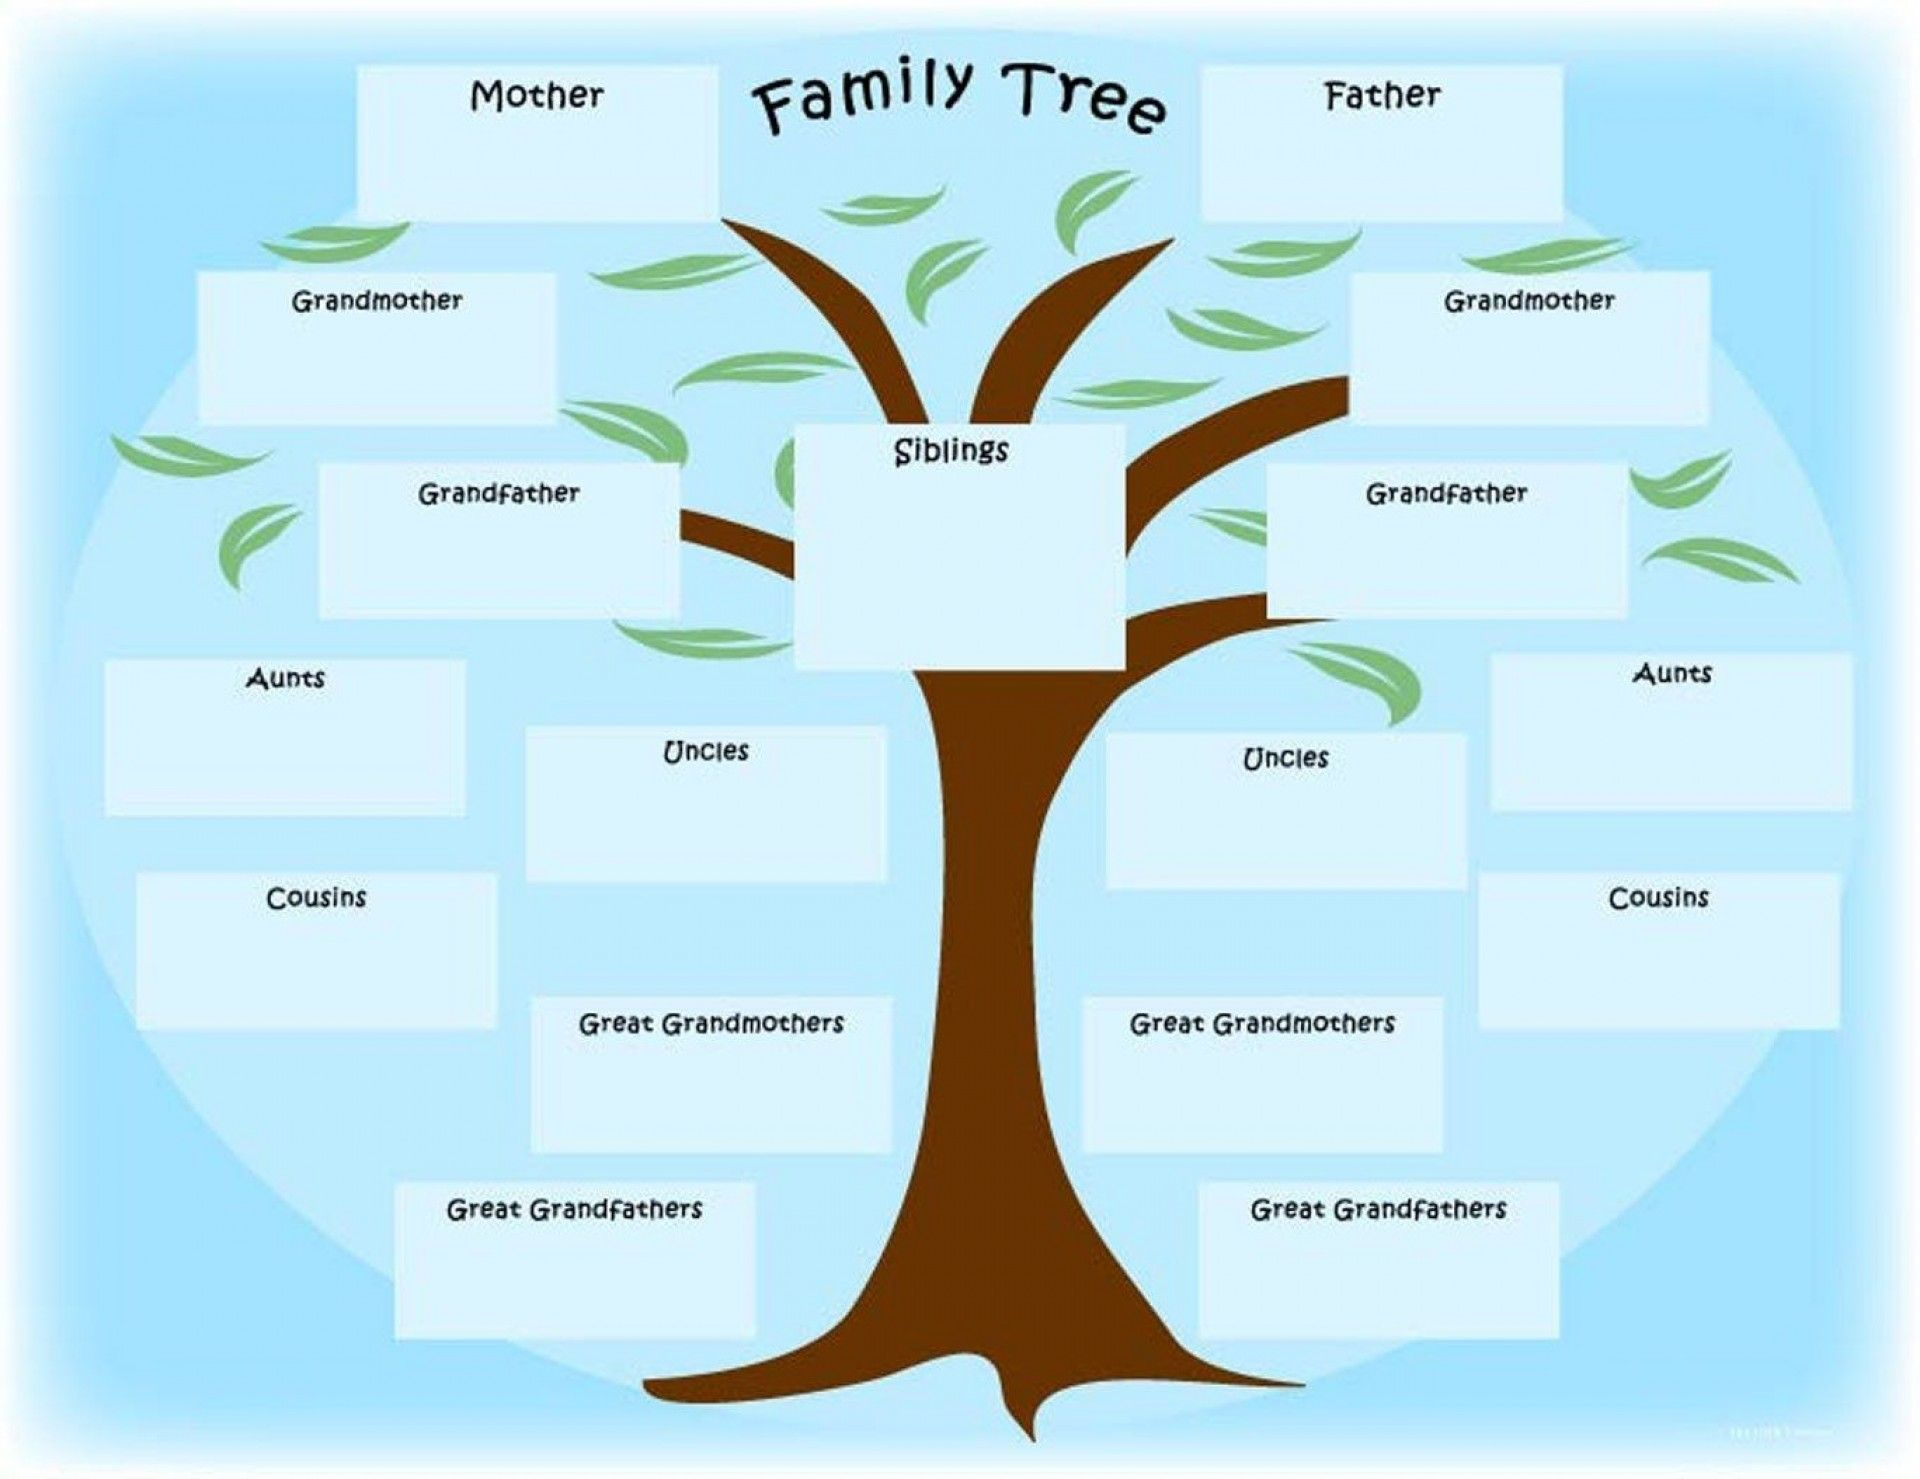 Complete Free Printable Family Tree Chart Kids Printable Family Tree Chart With Siblings Family Tr Family Tree Printable Family Tree Template Family Tree Chart